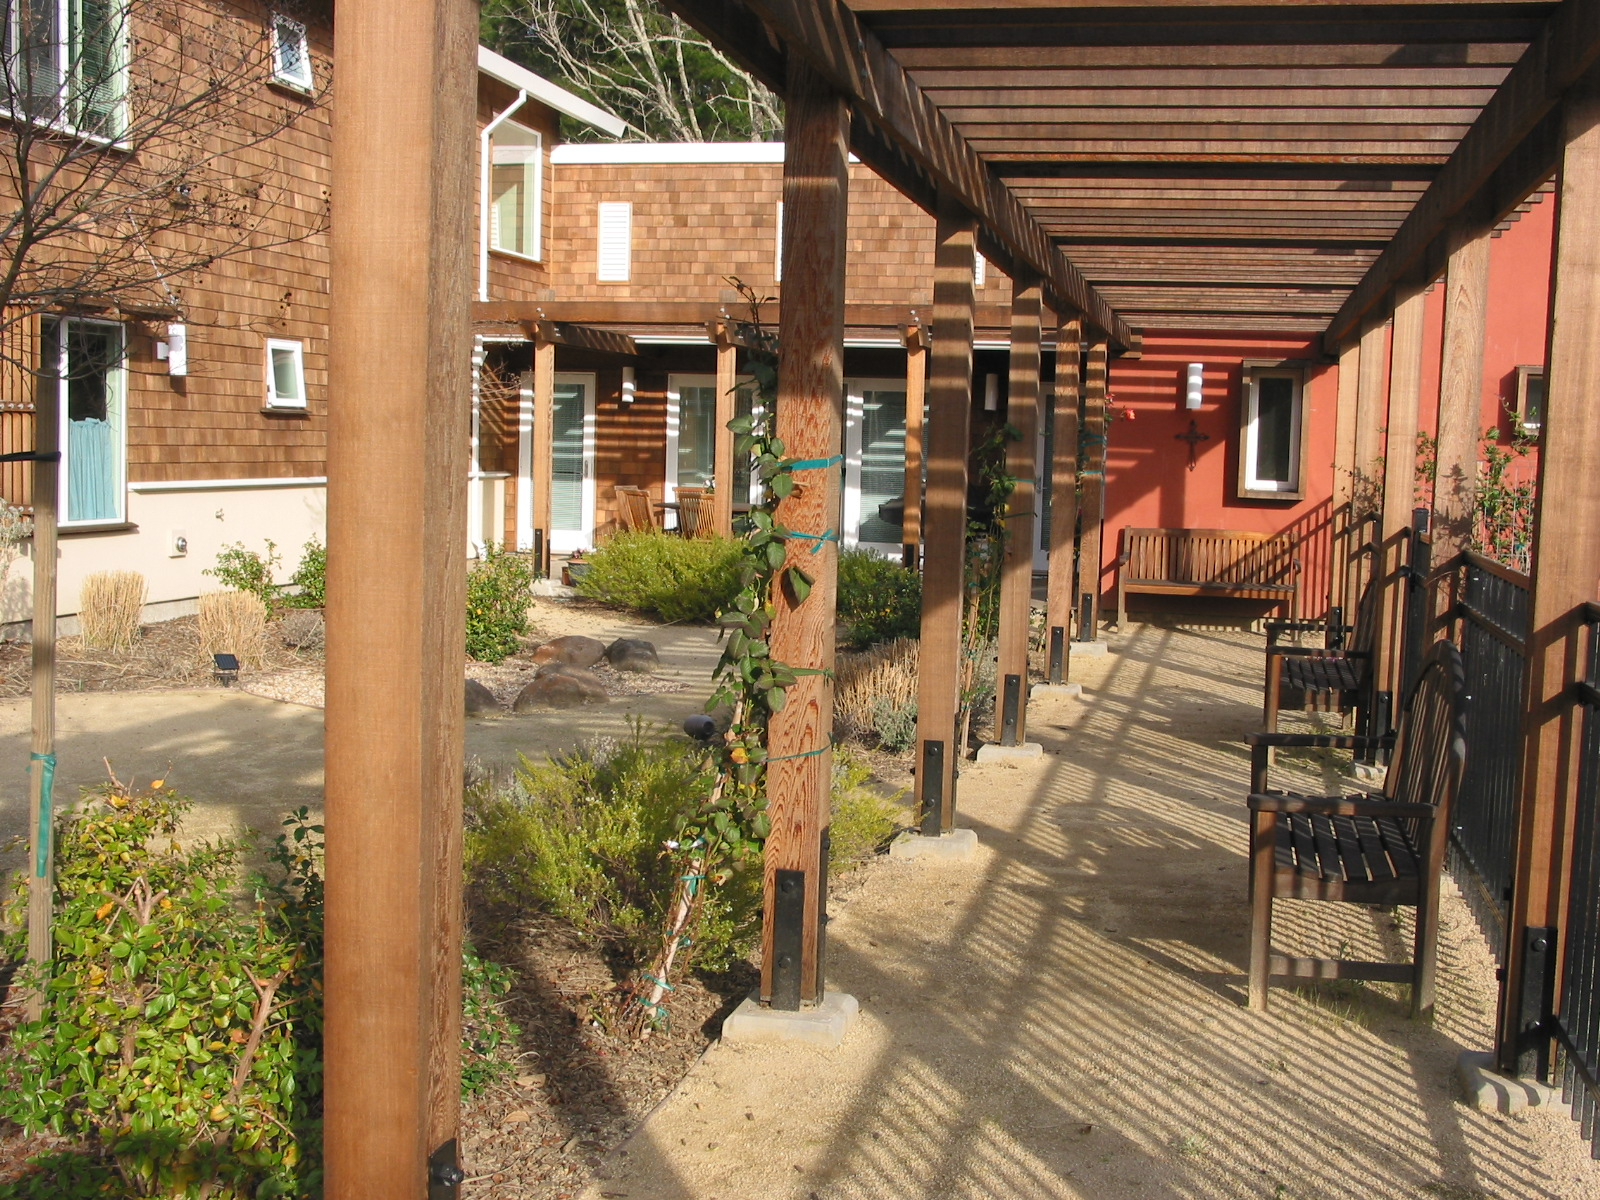 Dominican Sisters House of Formation_courtyard3.JPG